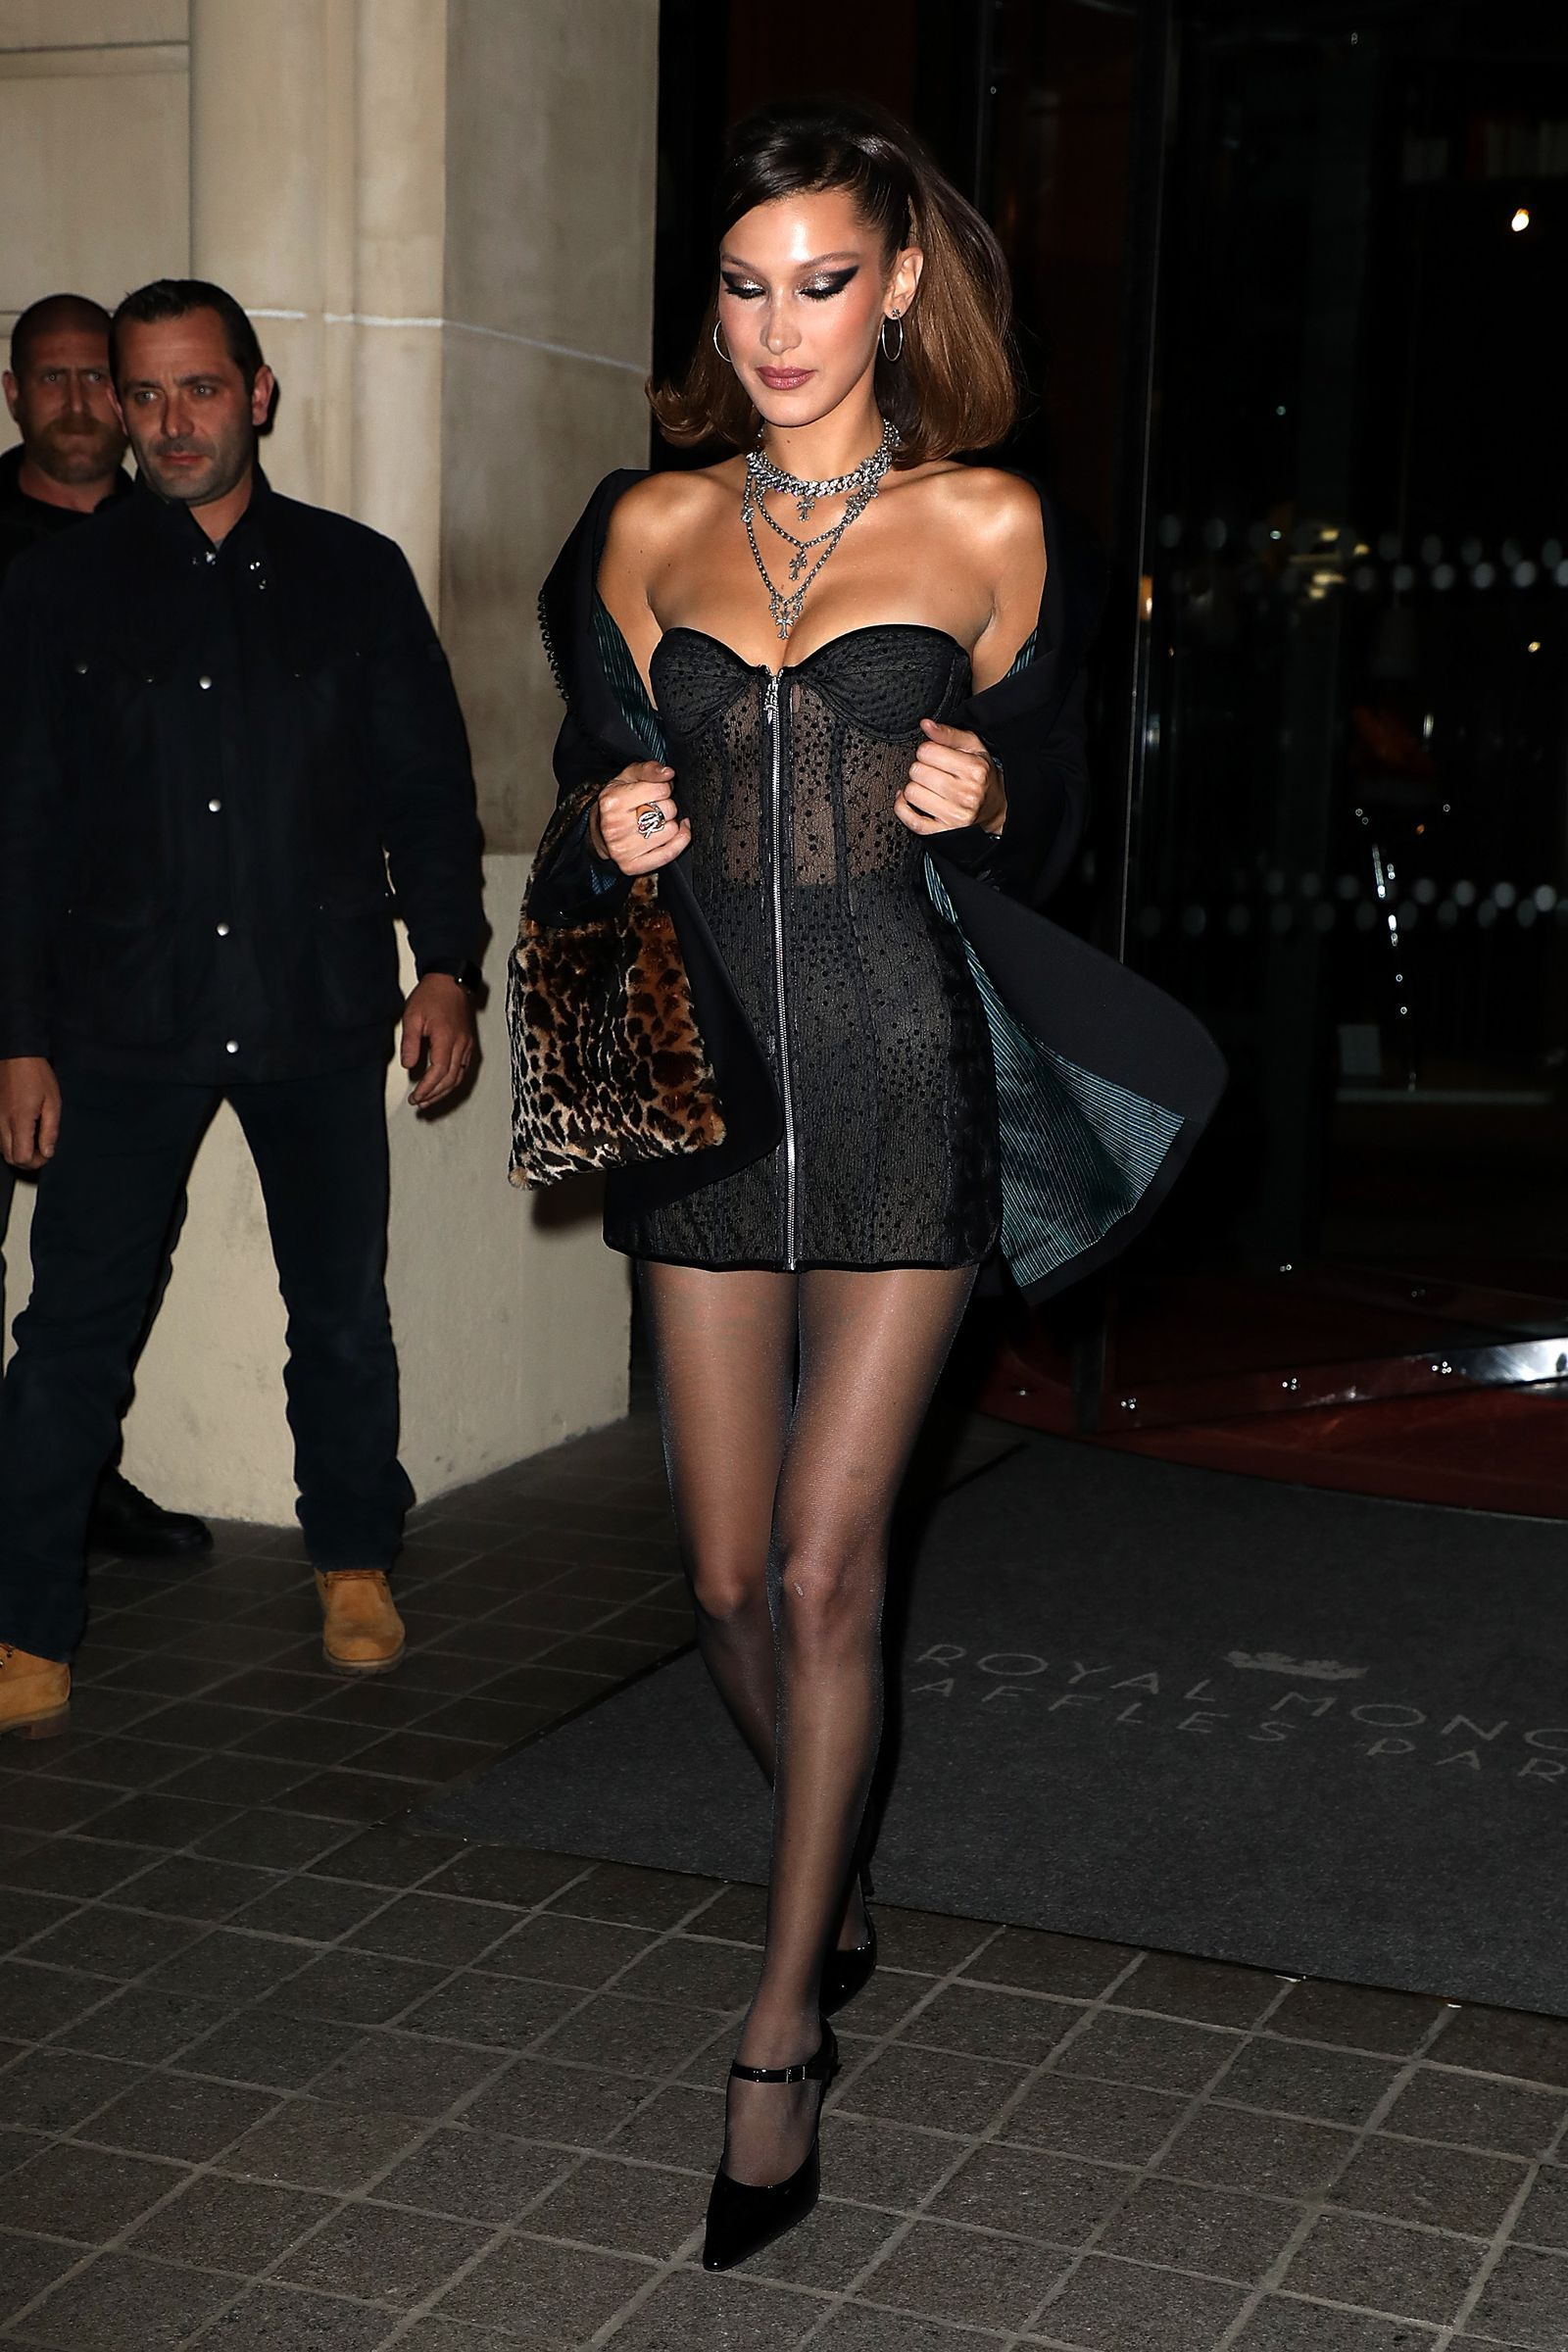 Bella Hadid Went Out In An Insanely Short Sheer Black Bustier Dress In Paris Bella Hadid Outfits Black Bustier Dress Bustier Dress [ 2400 x 1600 Pixel ]